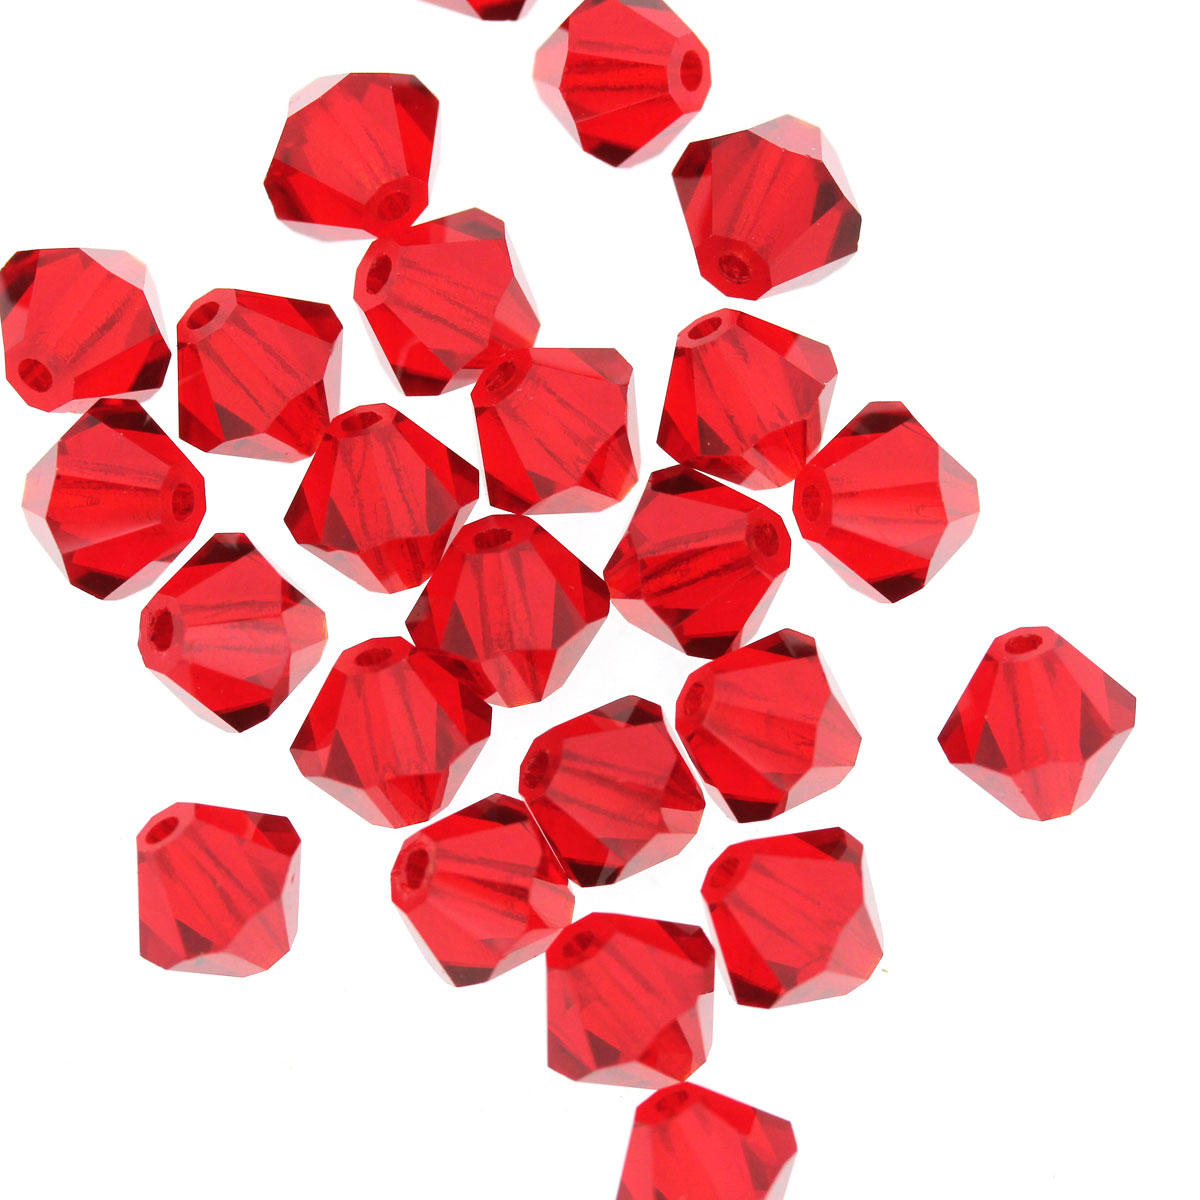 Red Siam Crystal Bicone Glass Bead